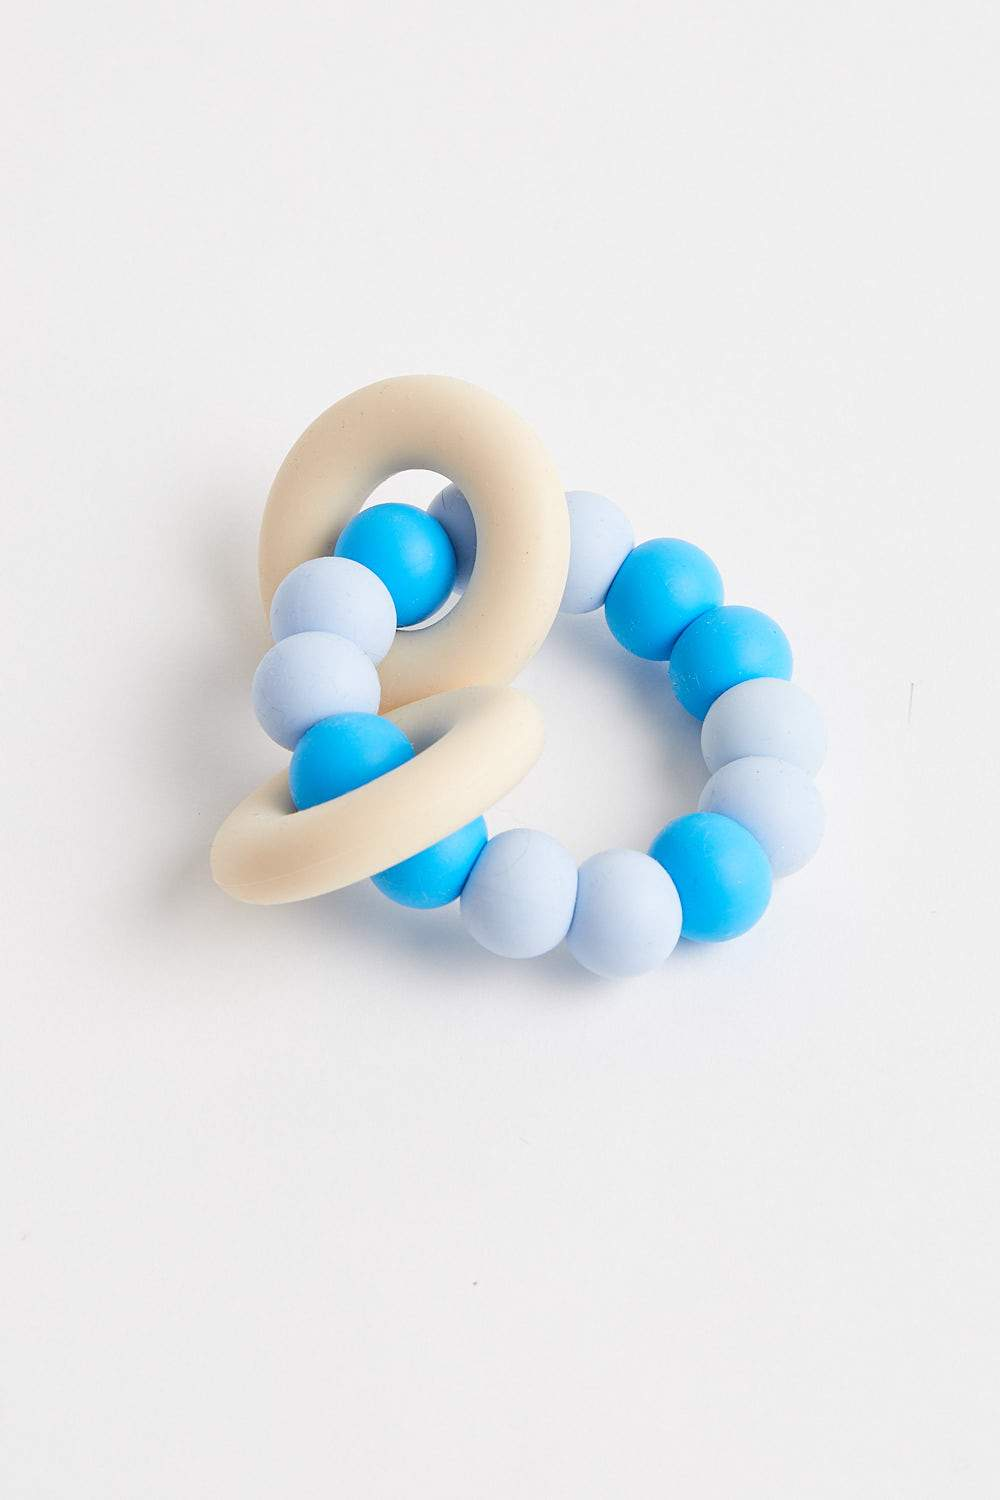 GUMMI Silicone Teether (Blue) Teether One Chew Three